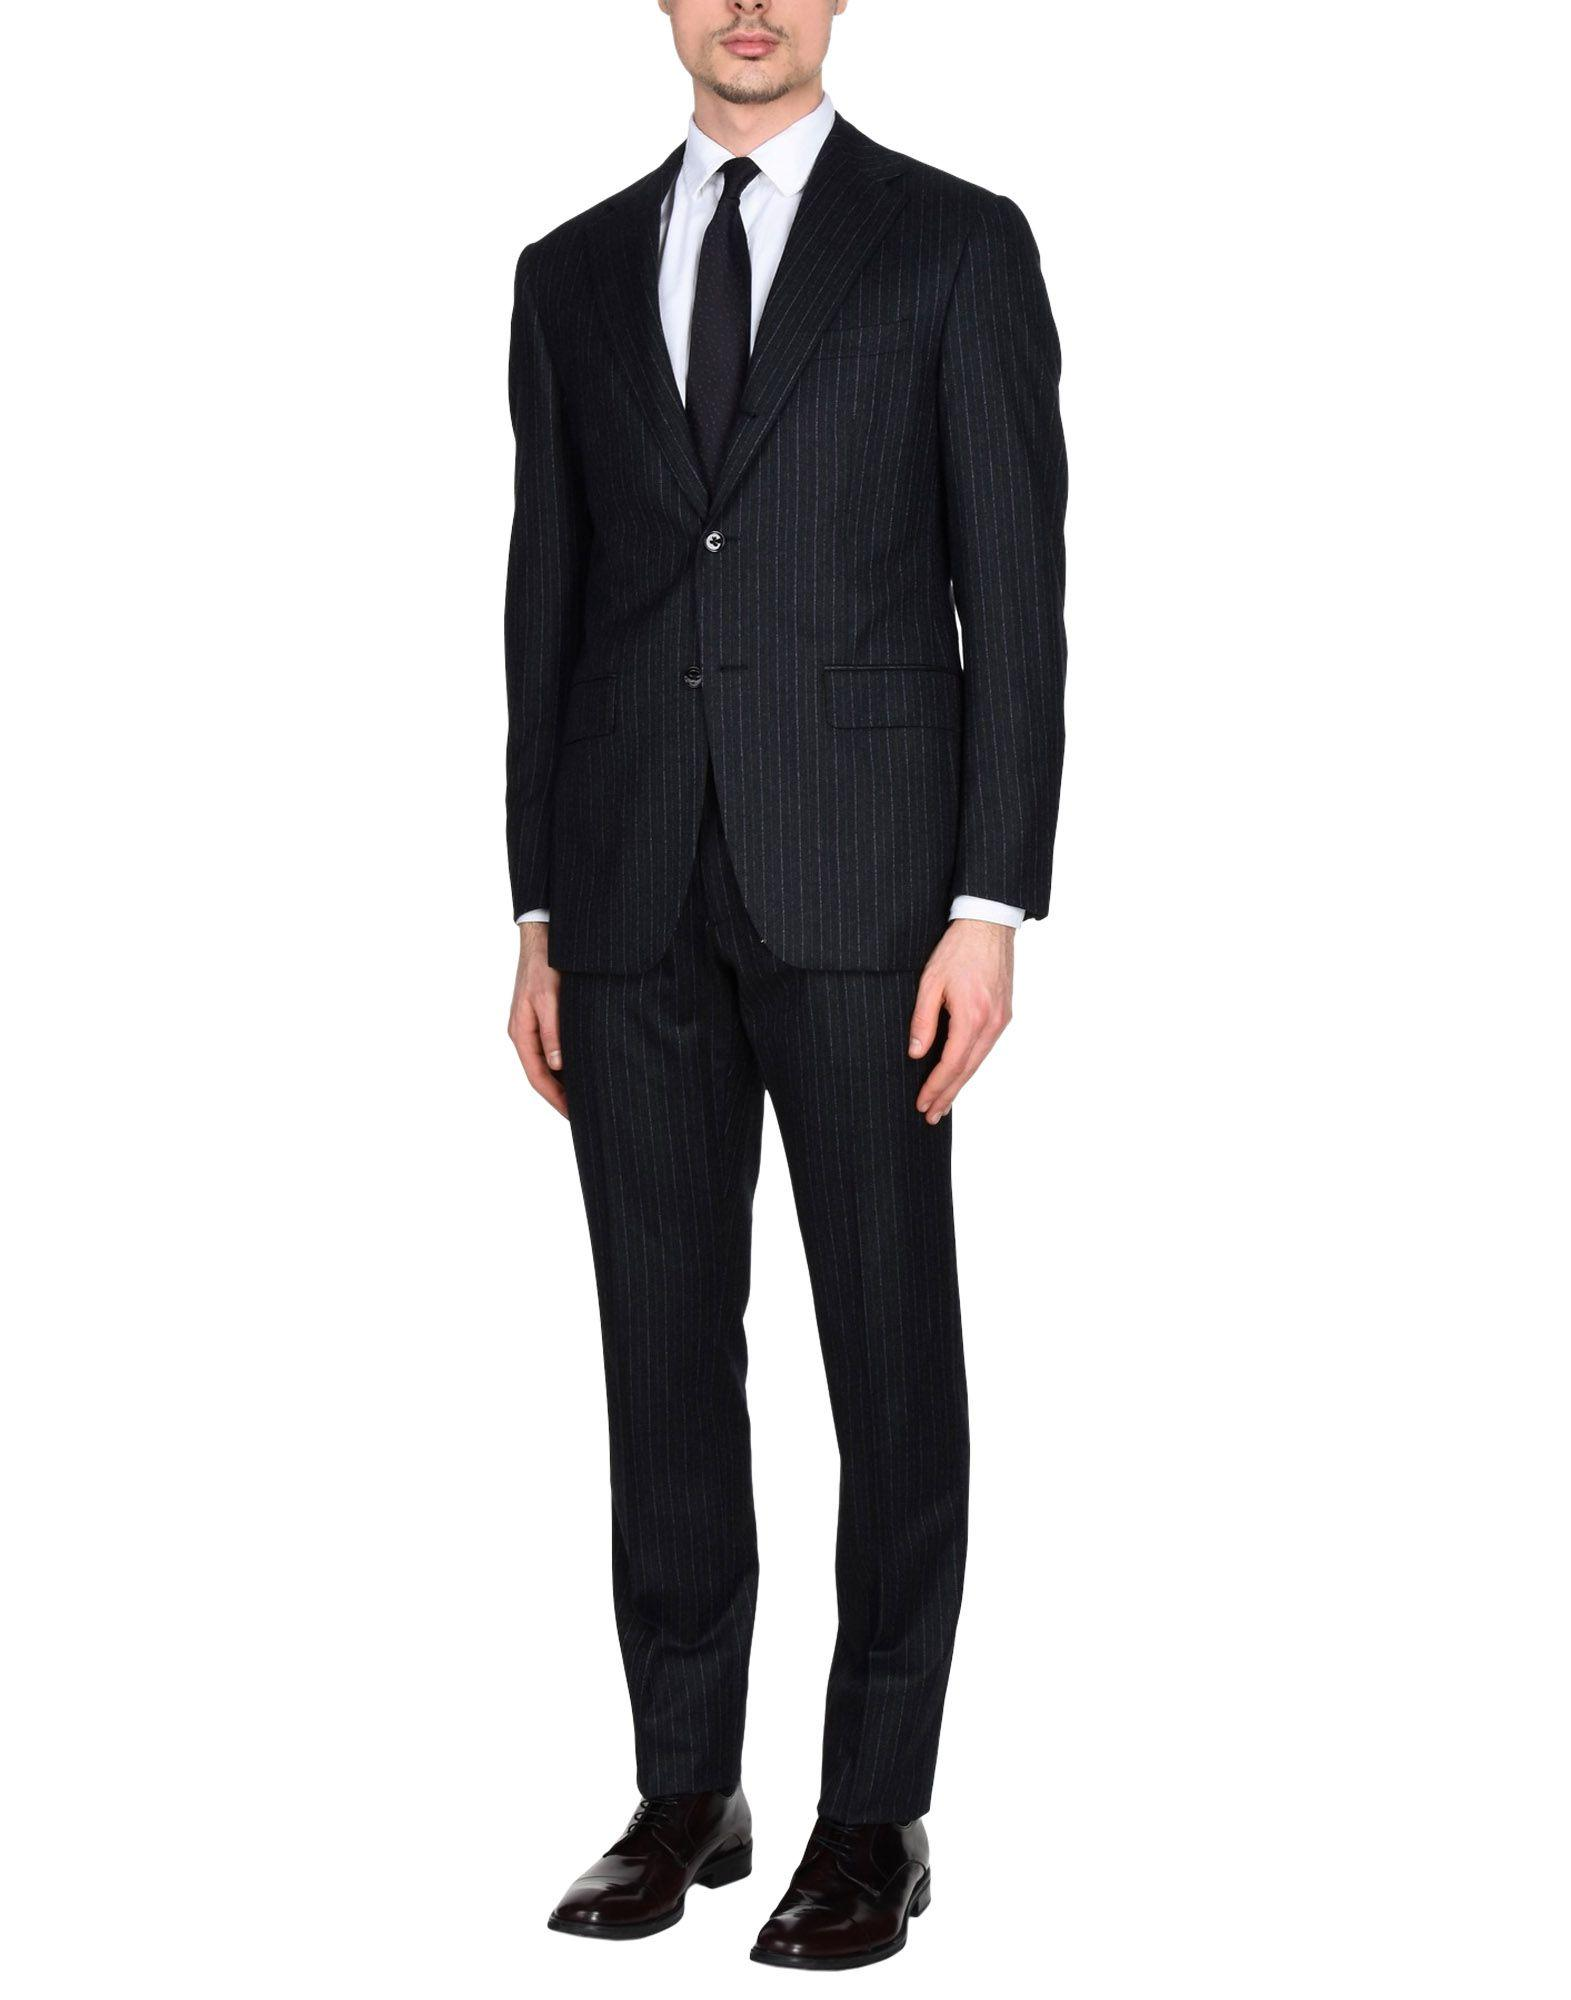 Cantarelli Suits In Steel Grey